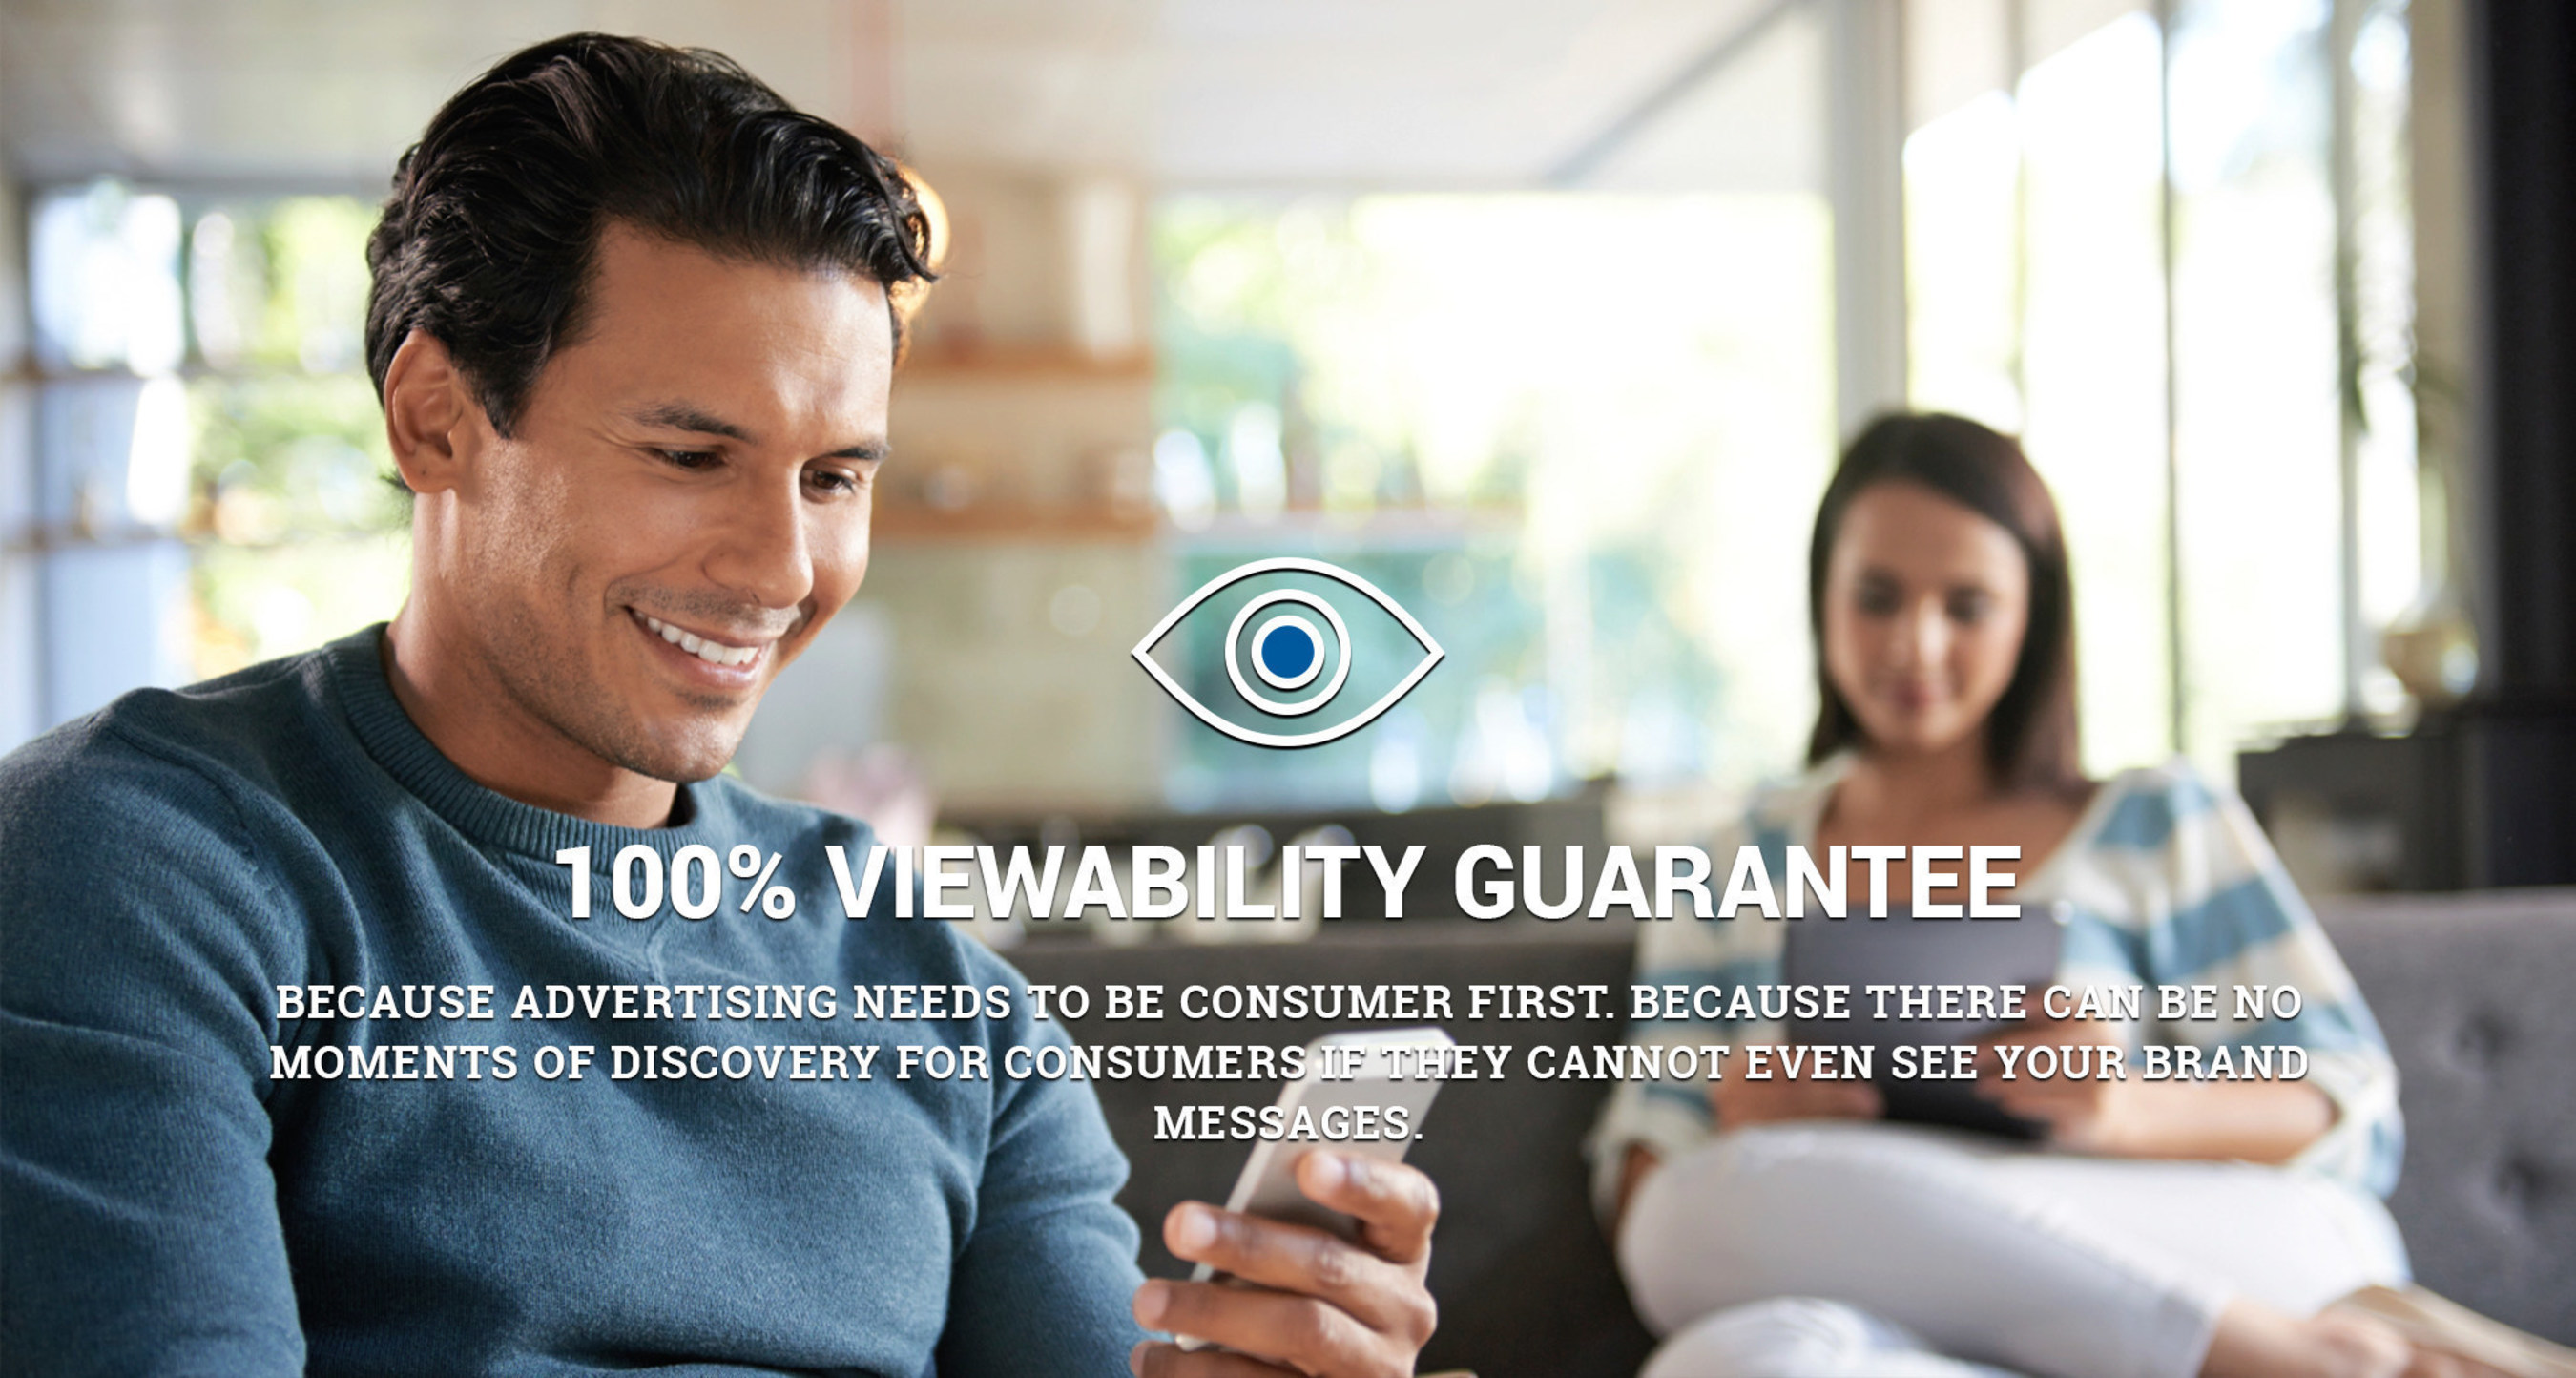 InMobi announces a guarantee of 100% viewability for all in-app mobile ad campaigns--guaranteeing to advertisers that their mobile ads were seen.